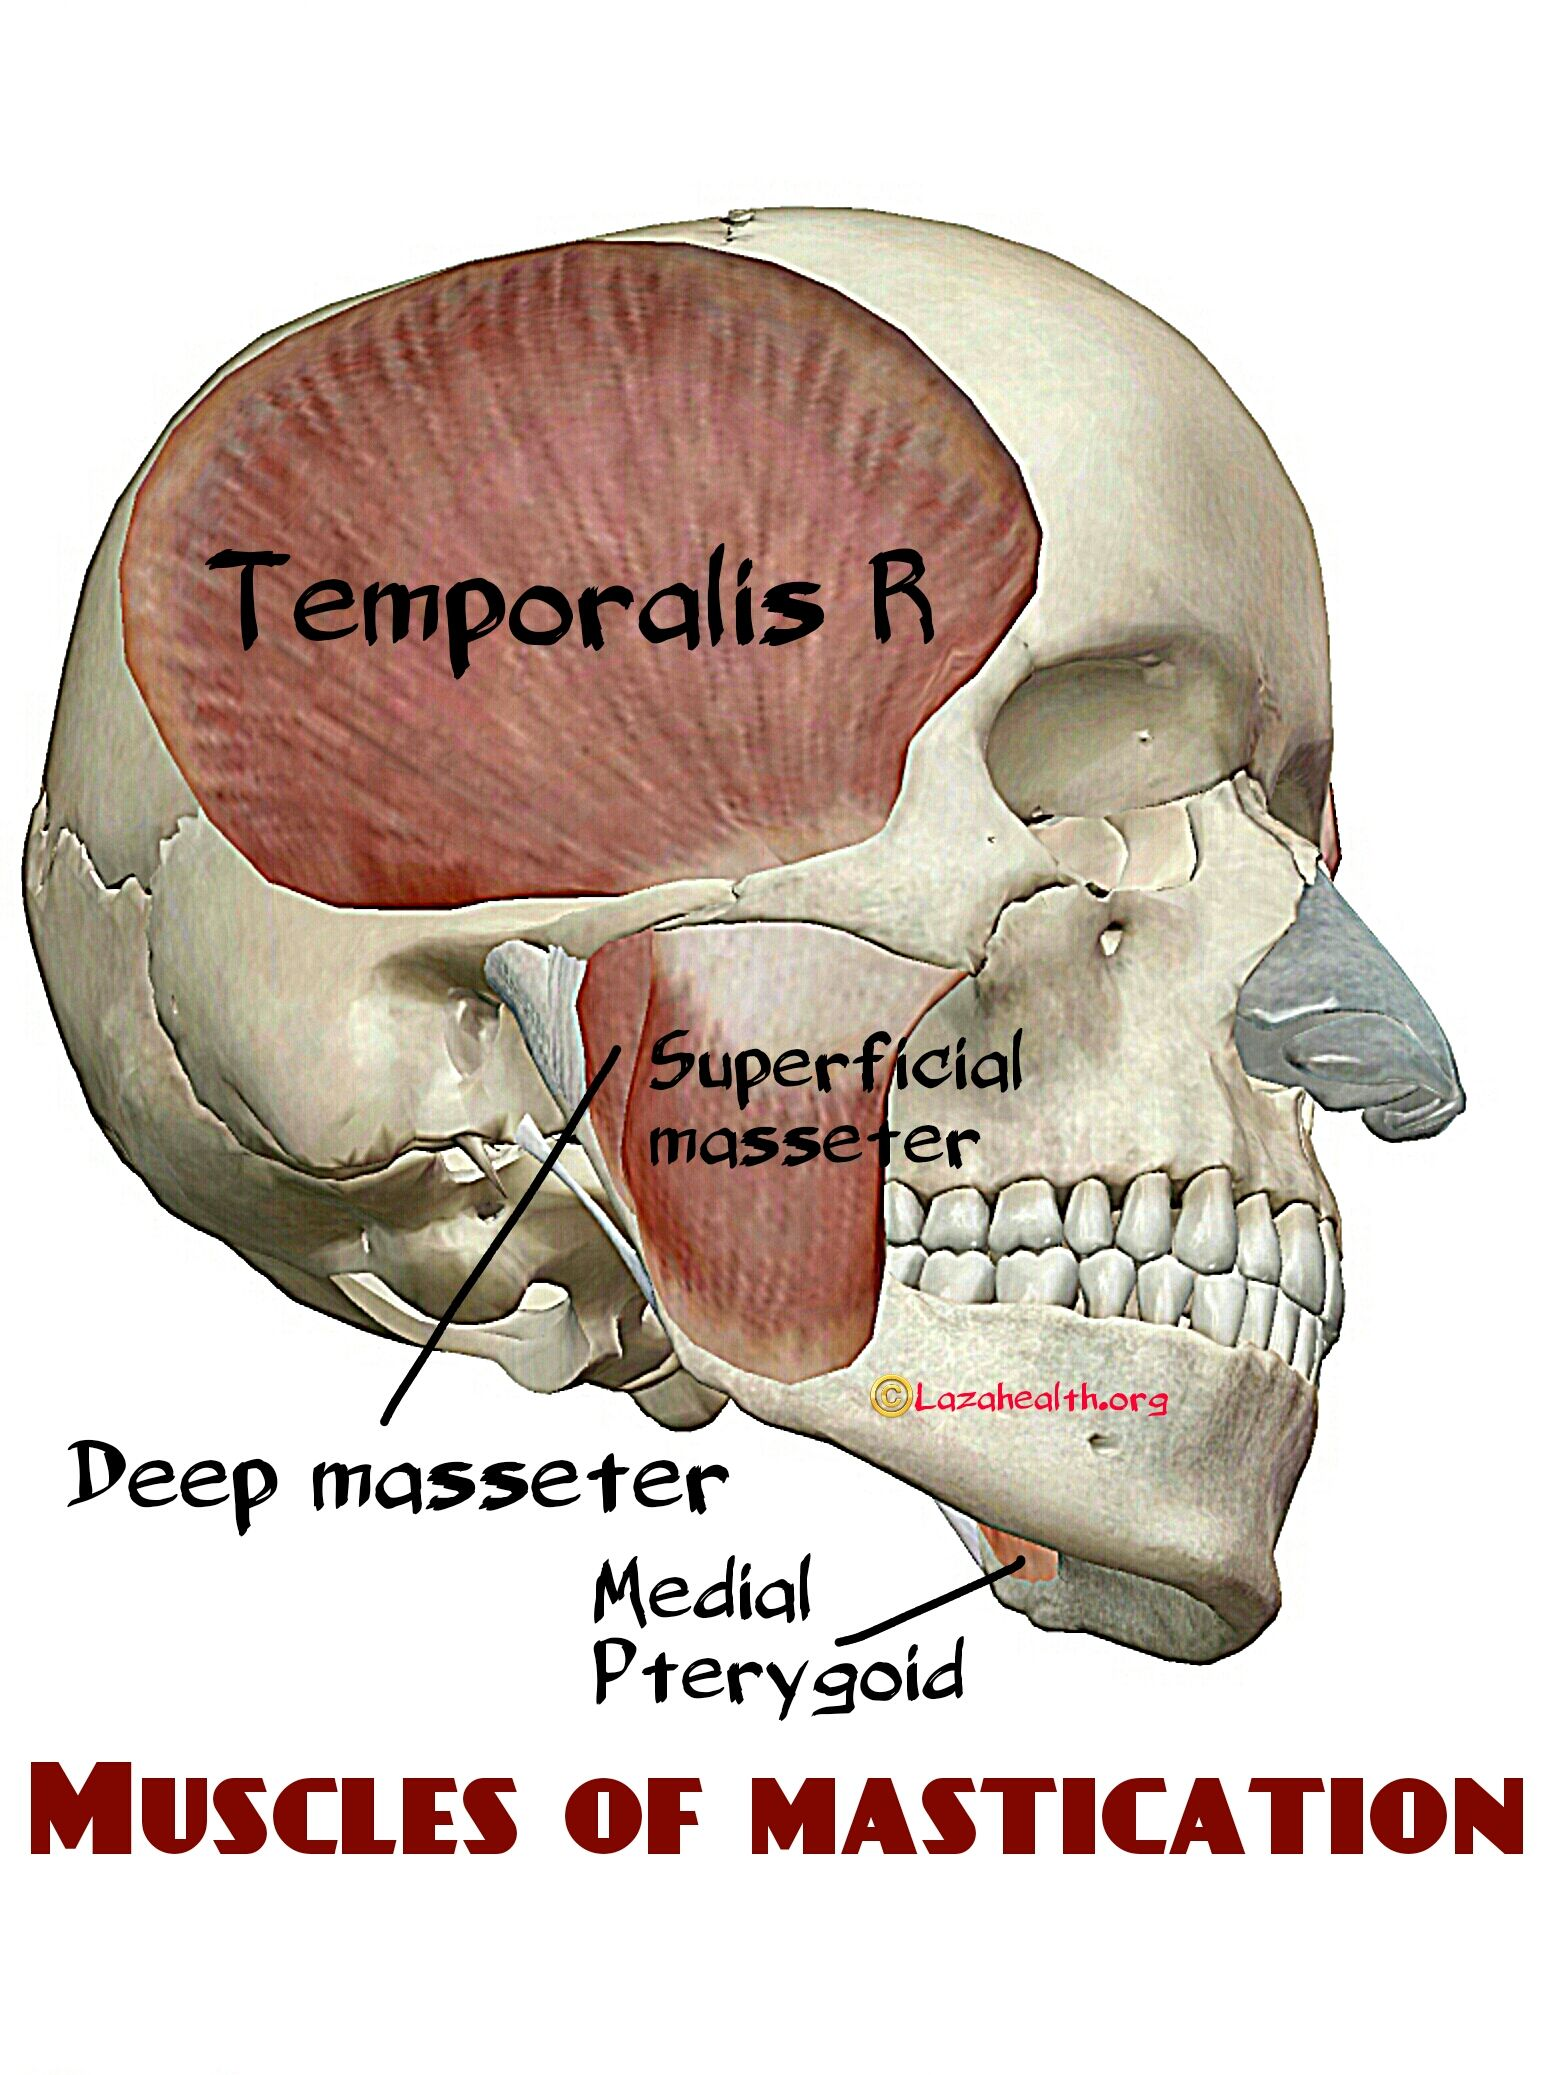 Muscles of mastication | SLP Life-Adults | Pinterest | Muscles ...